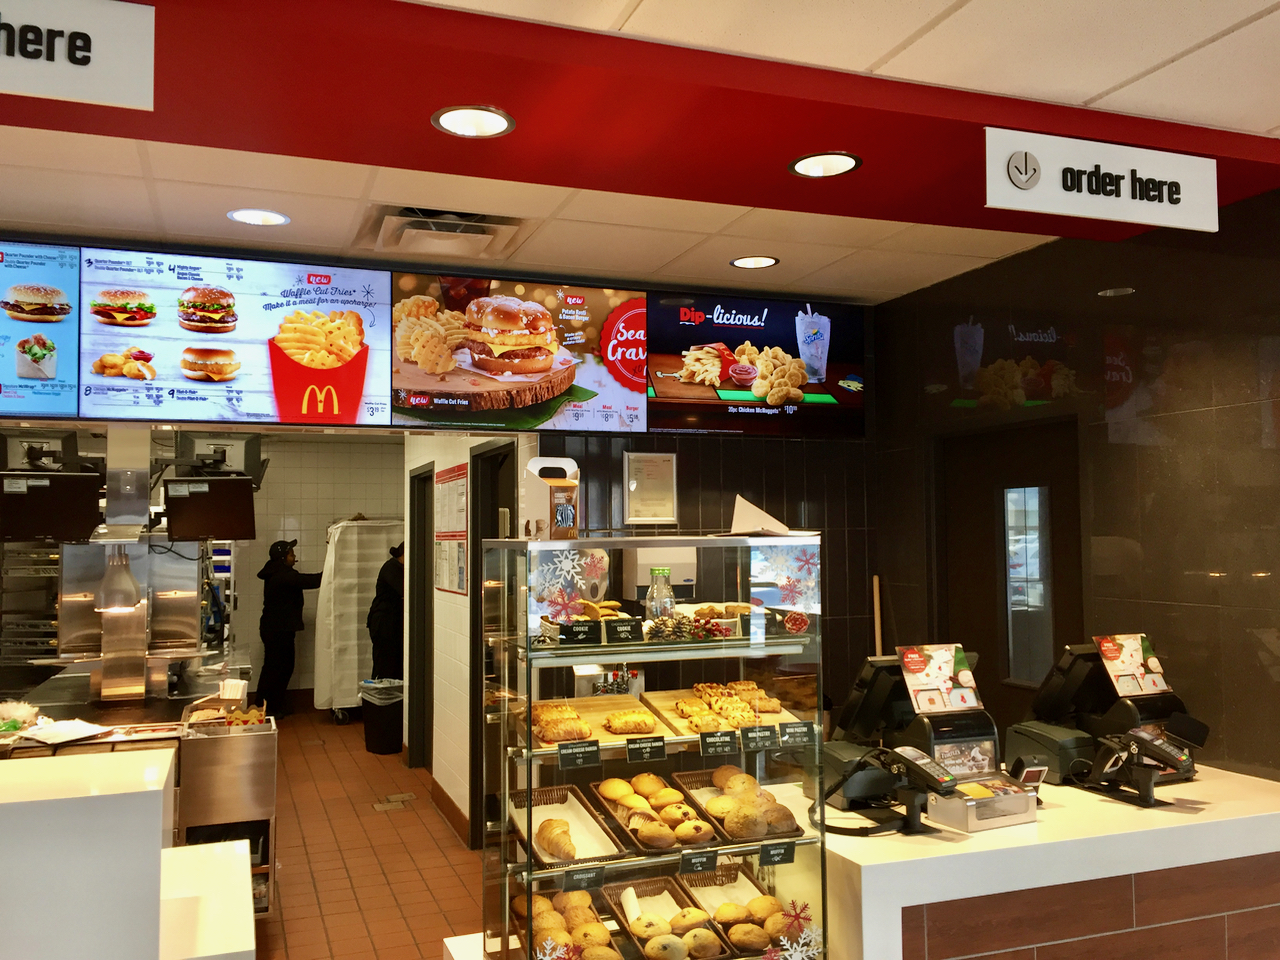 A very typical McDonalds outlet